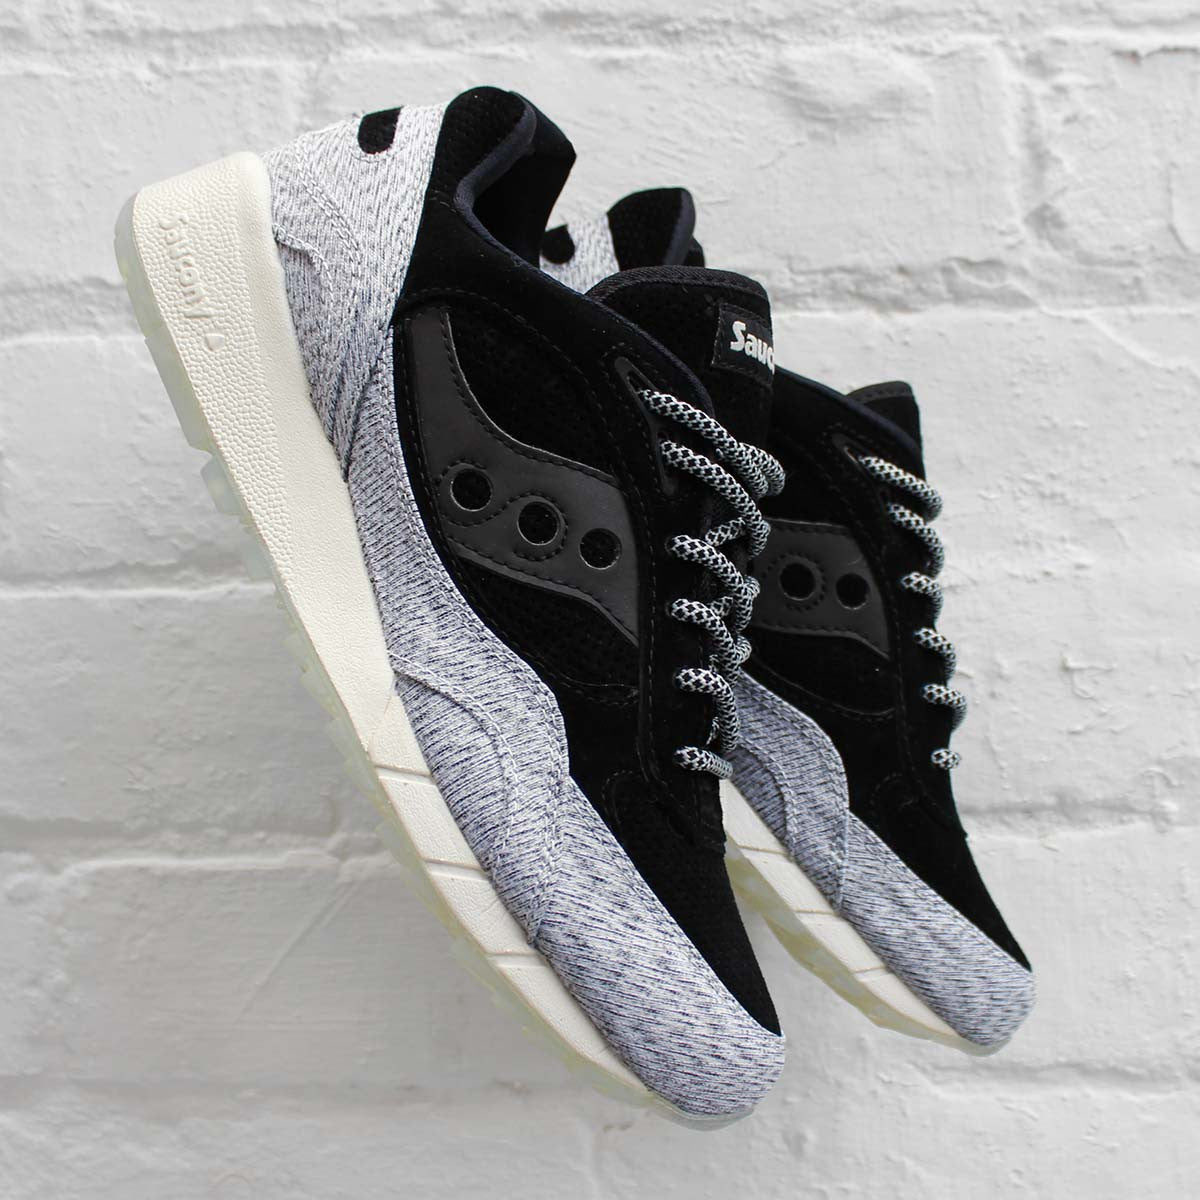 Saucony Shadow 6000 Dirty Snow Pack Grey/Black